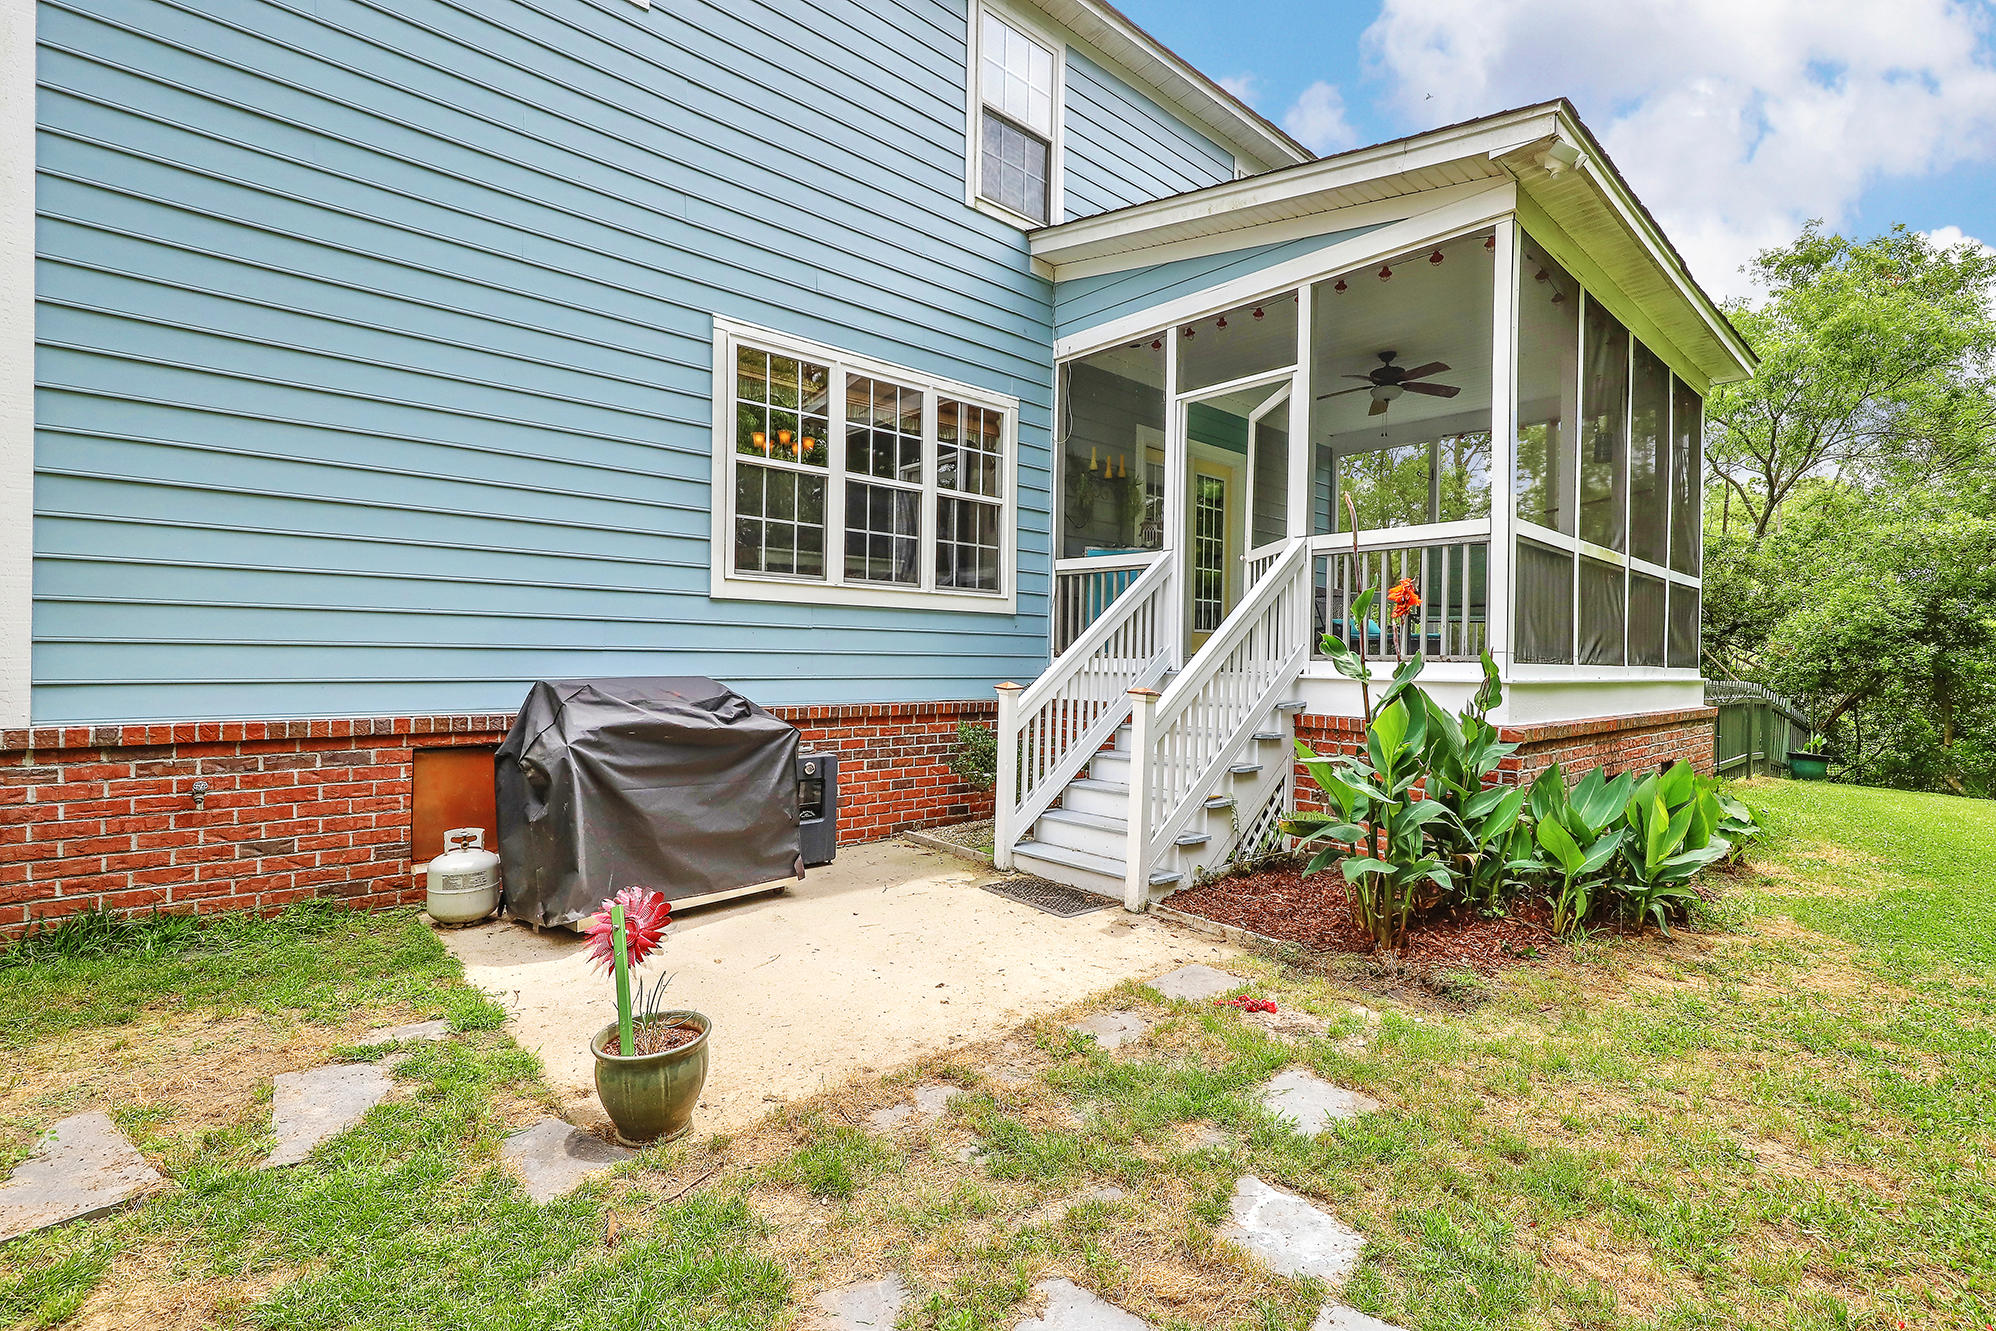 Rivertowne On The Wando Homes For Sale - 2182 Sandy Point Lane, Mount Pleasant, SC - 0